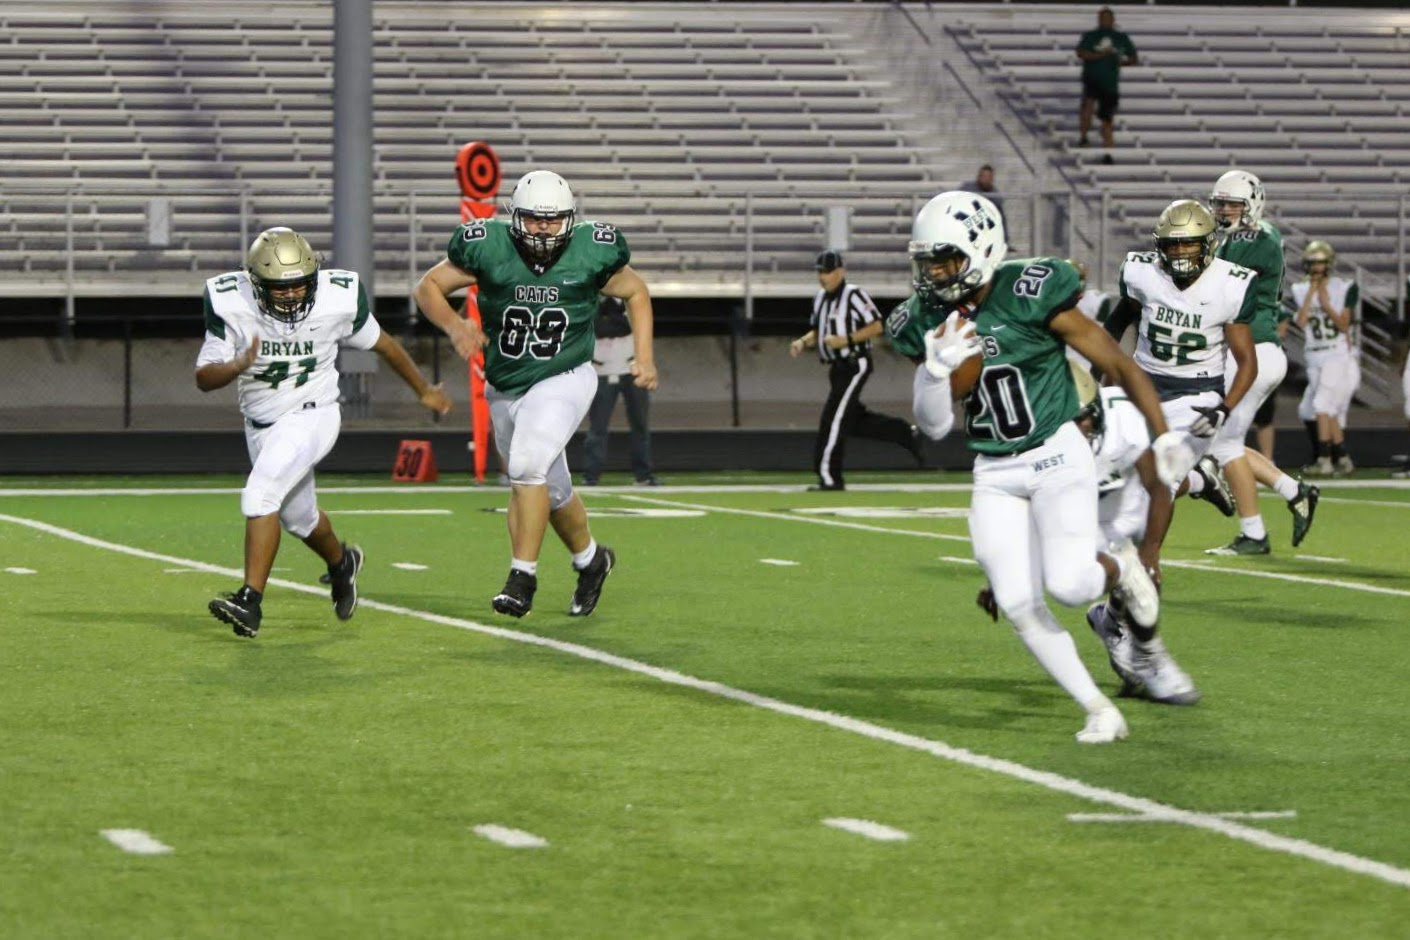 Zach Coleman runs the ball during Thursday's game against Bryan. The Wildcats outscored Bryan 74-6